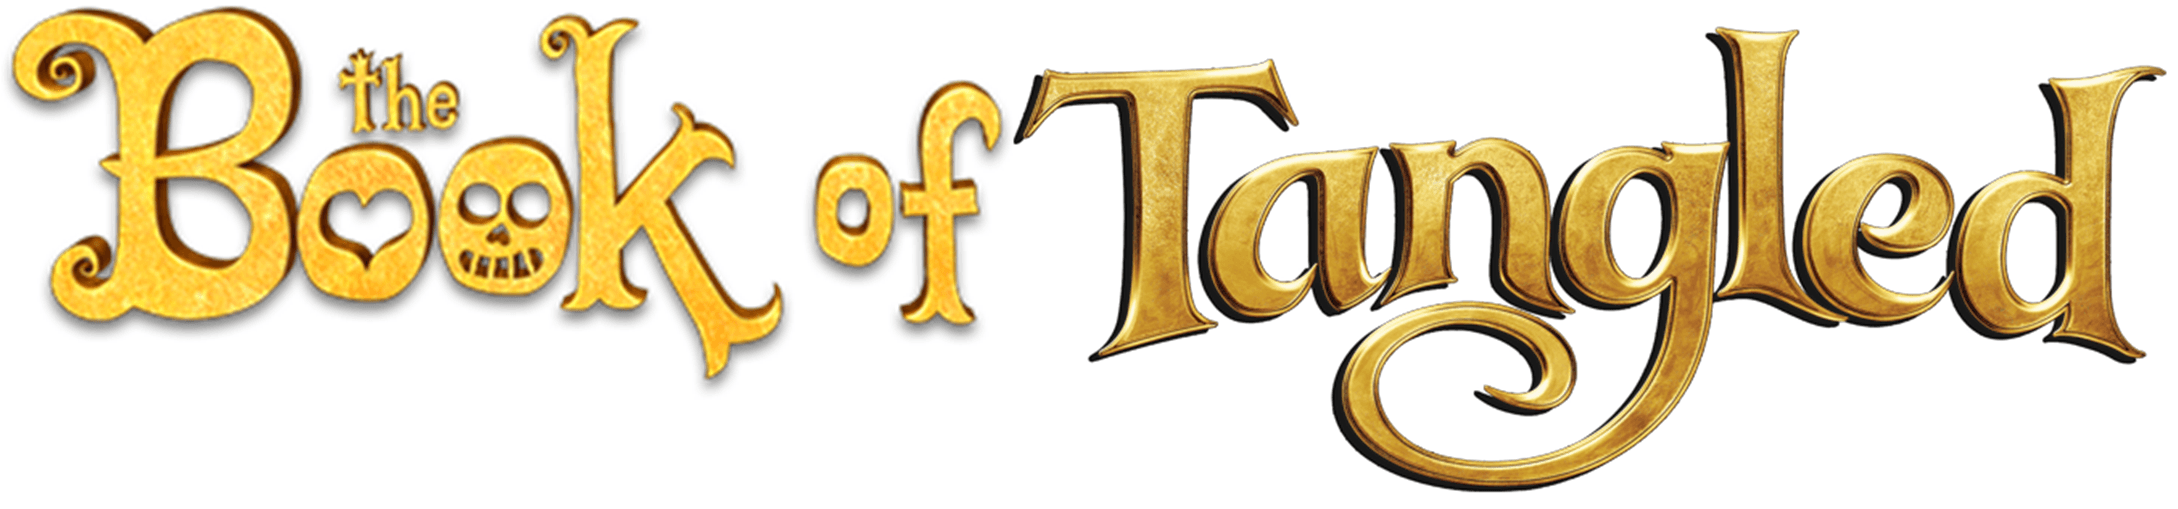 Tangled Logo - The Book of Tangled Logo by Frie-Ice on DeviantArt